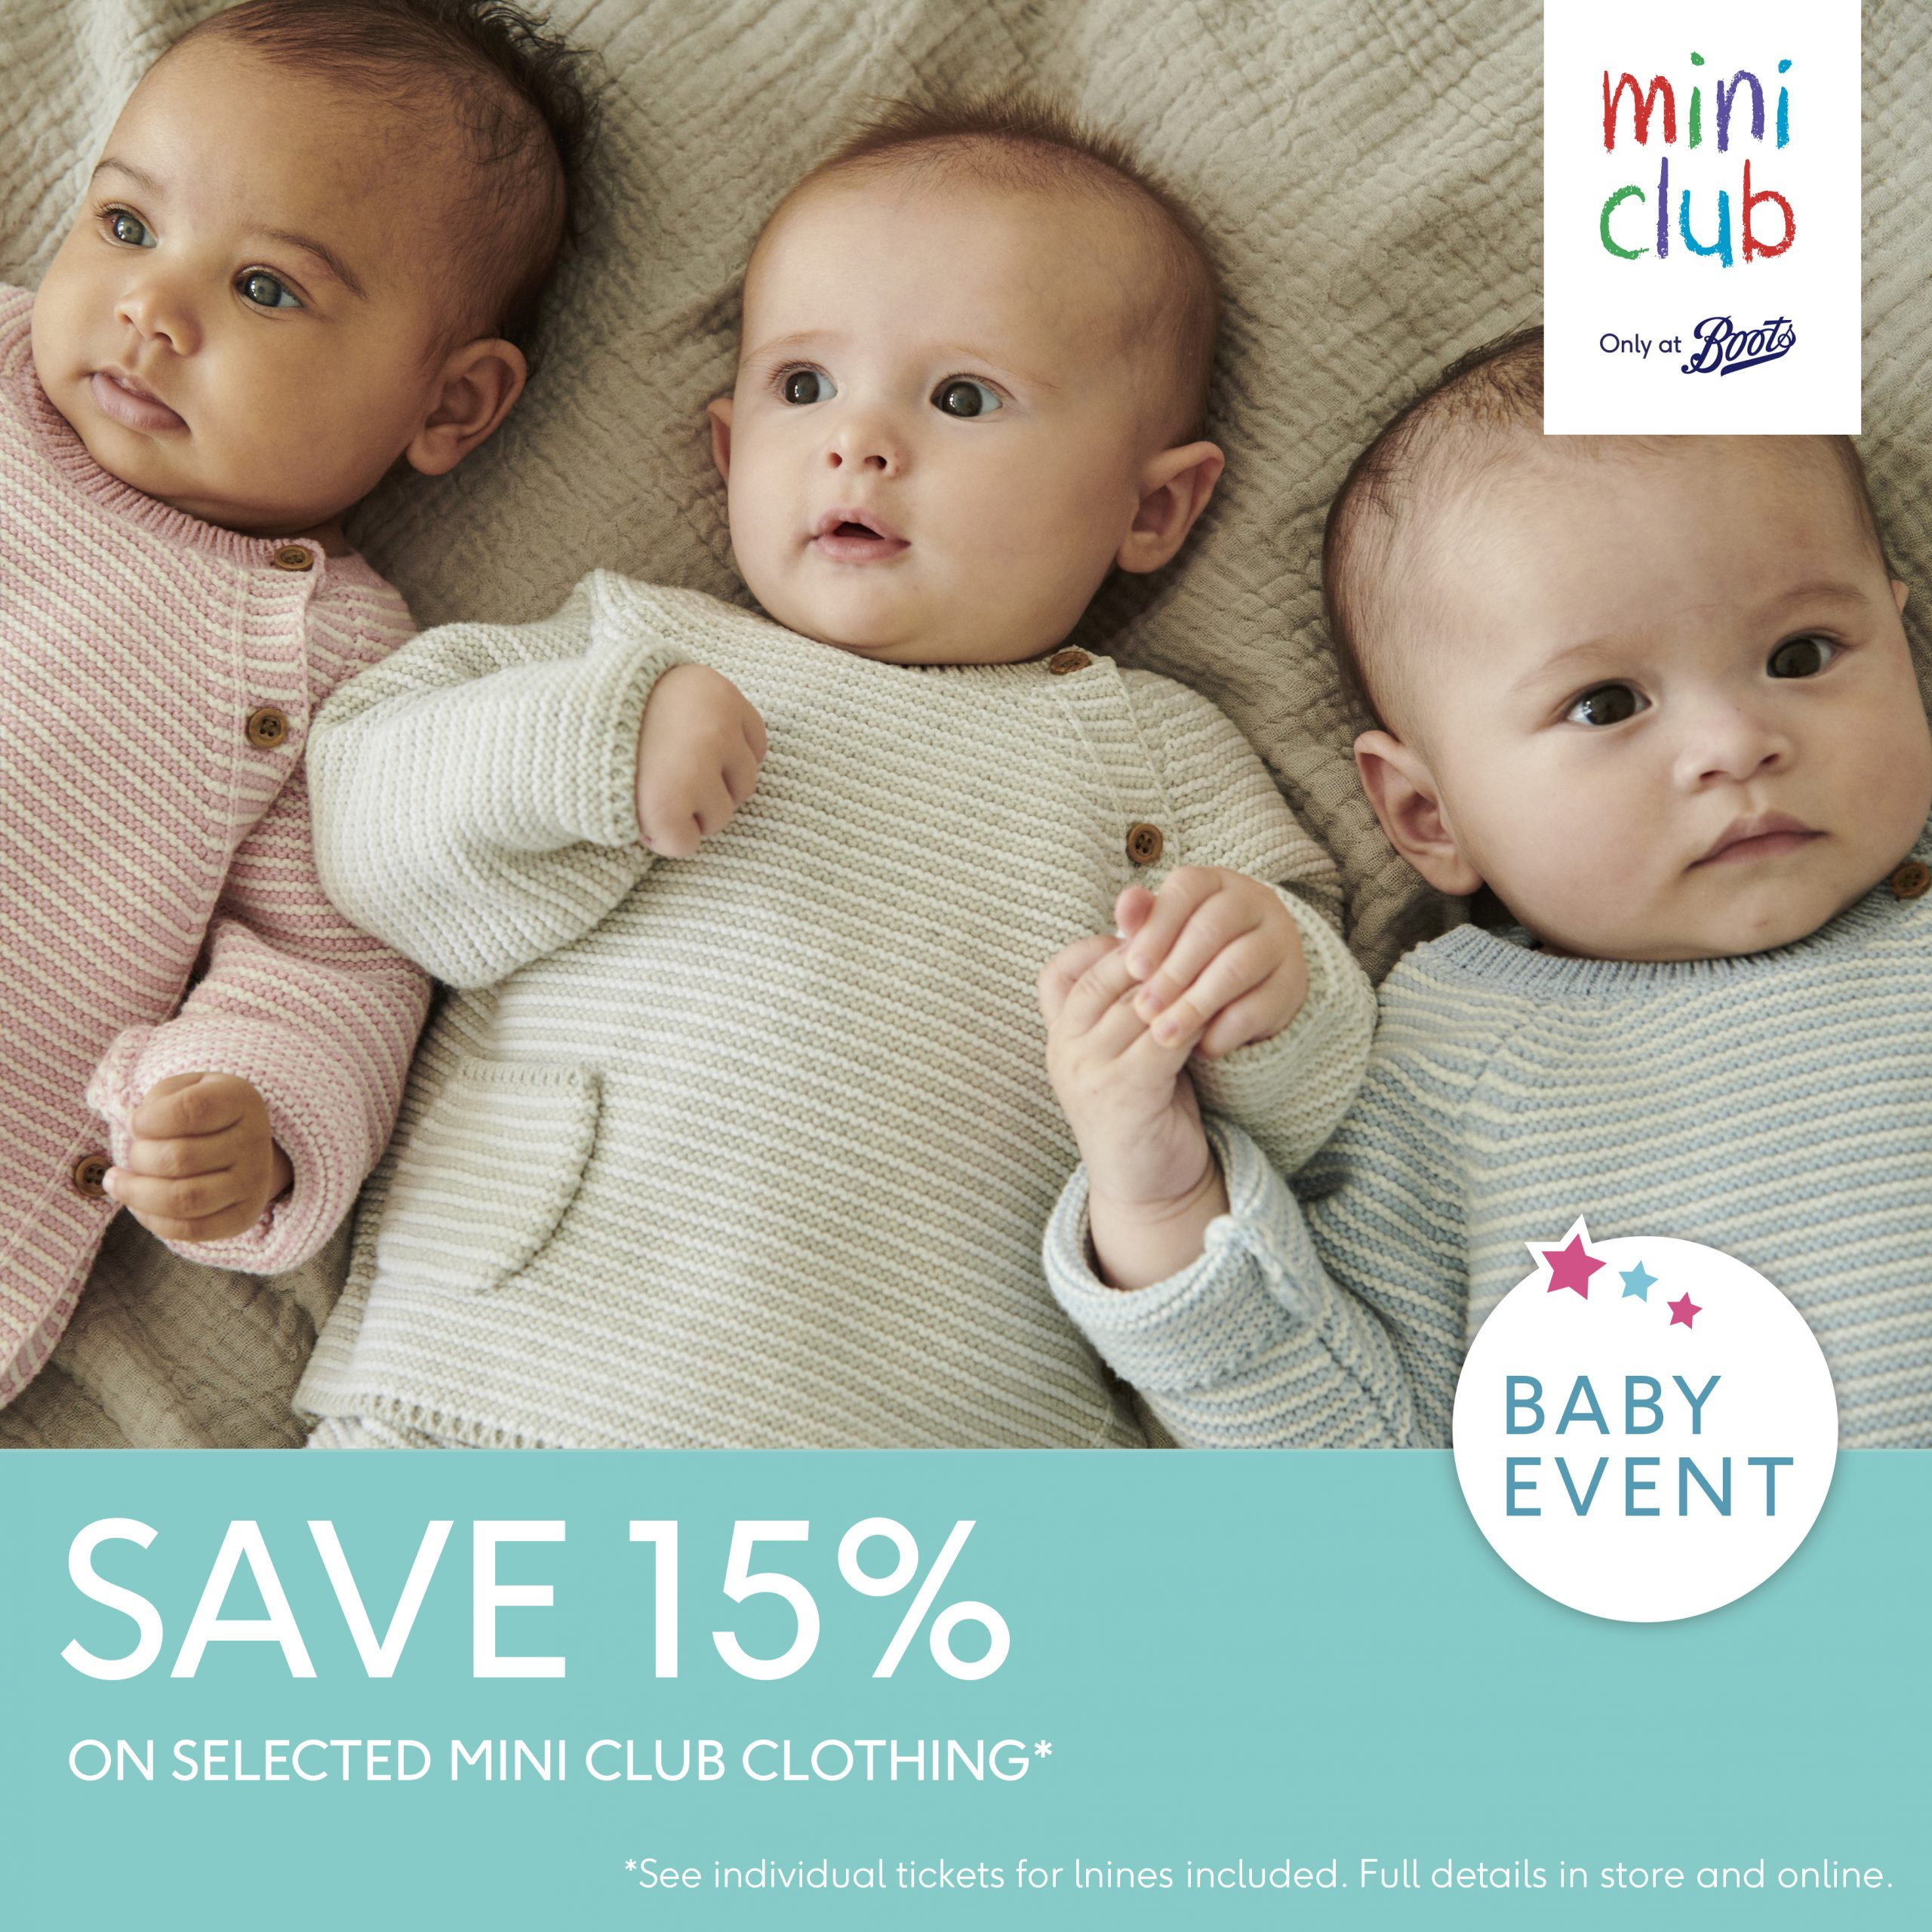 Boots Baby Event is Here!